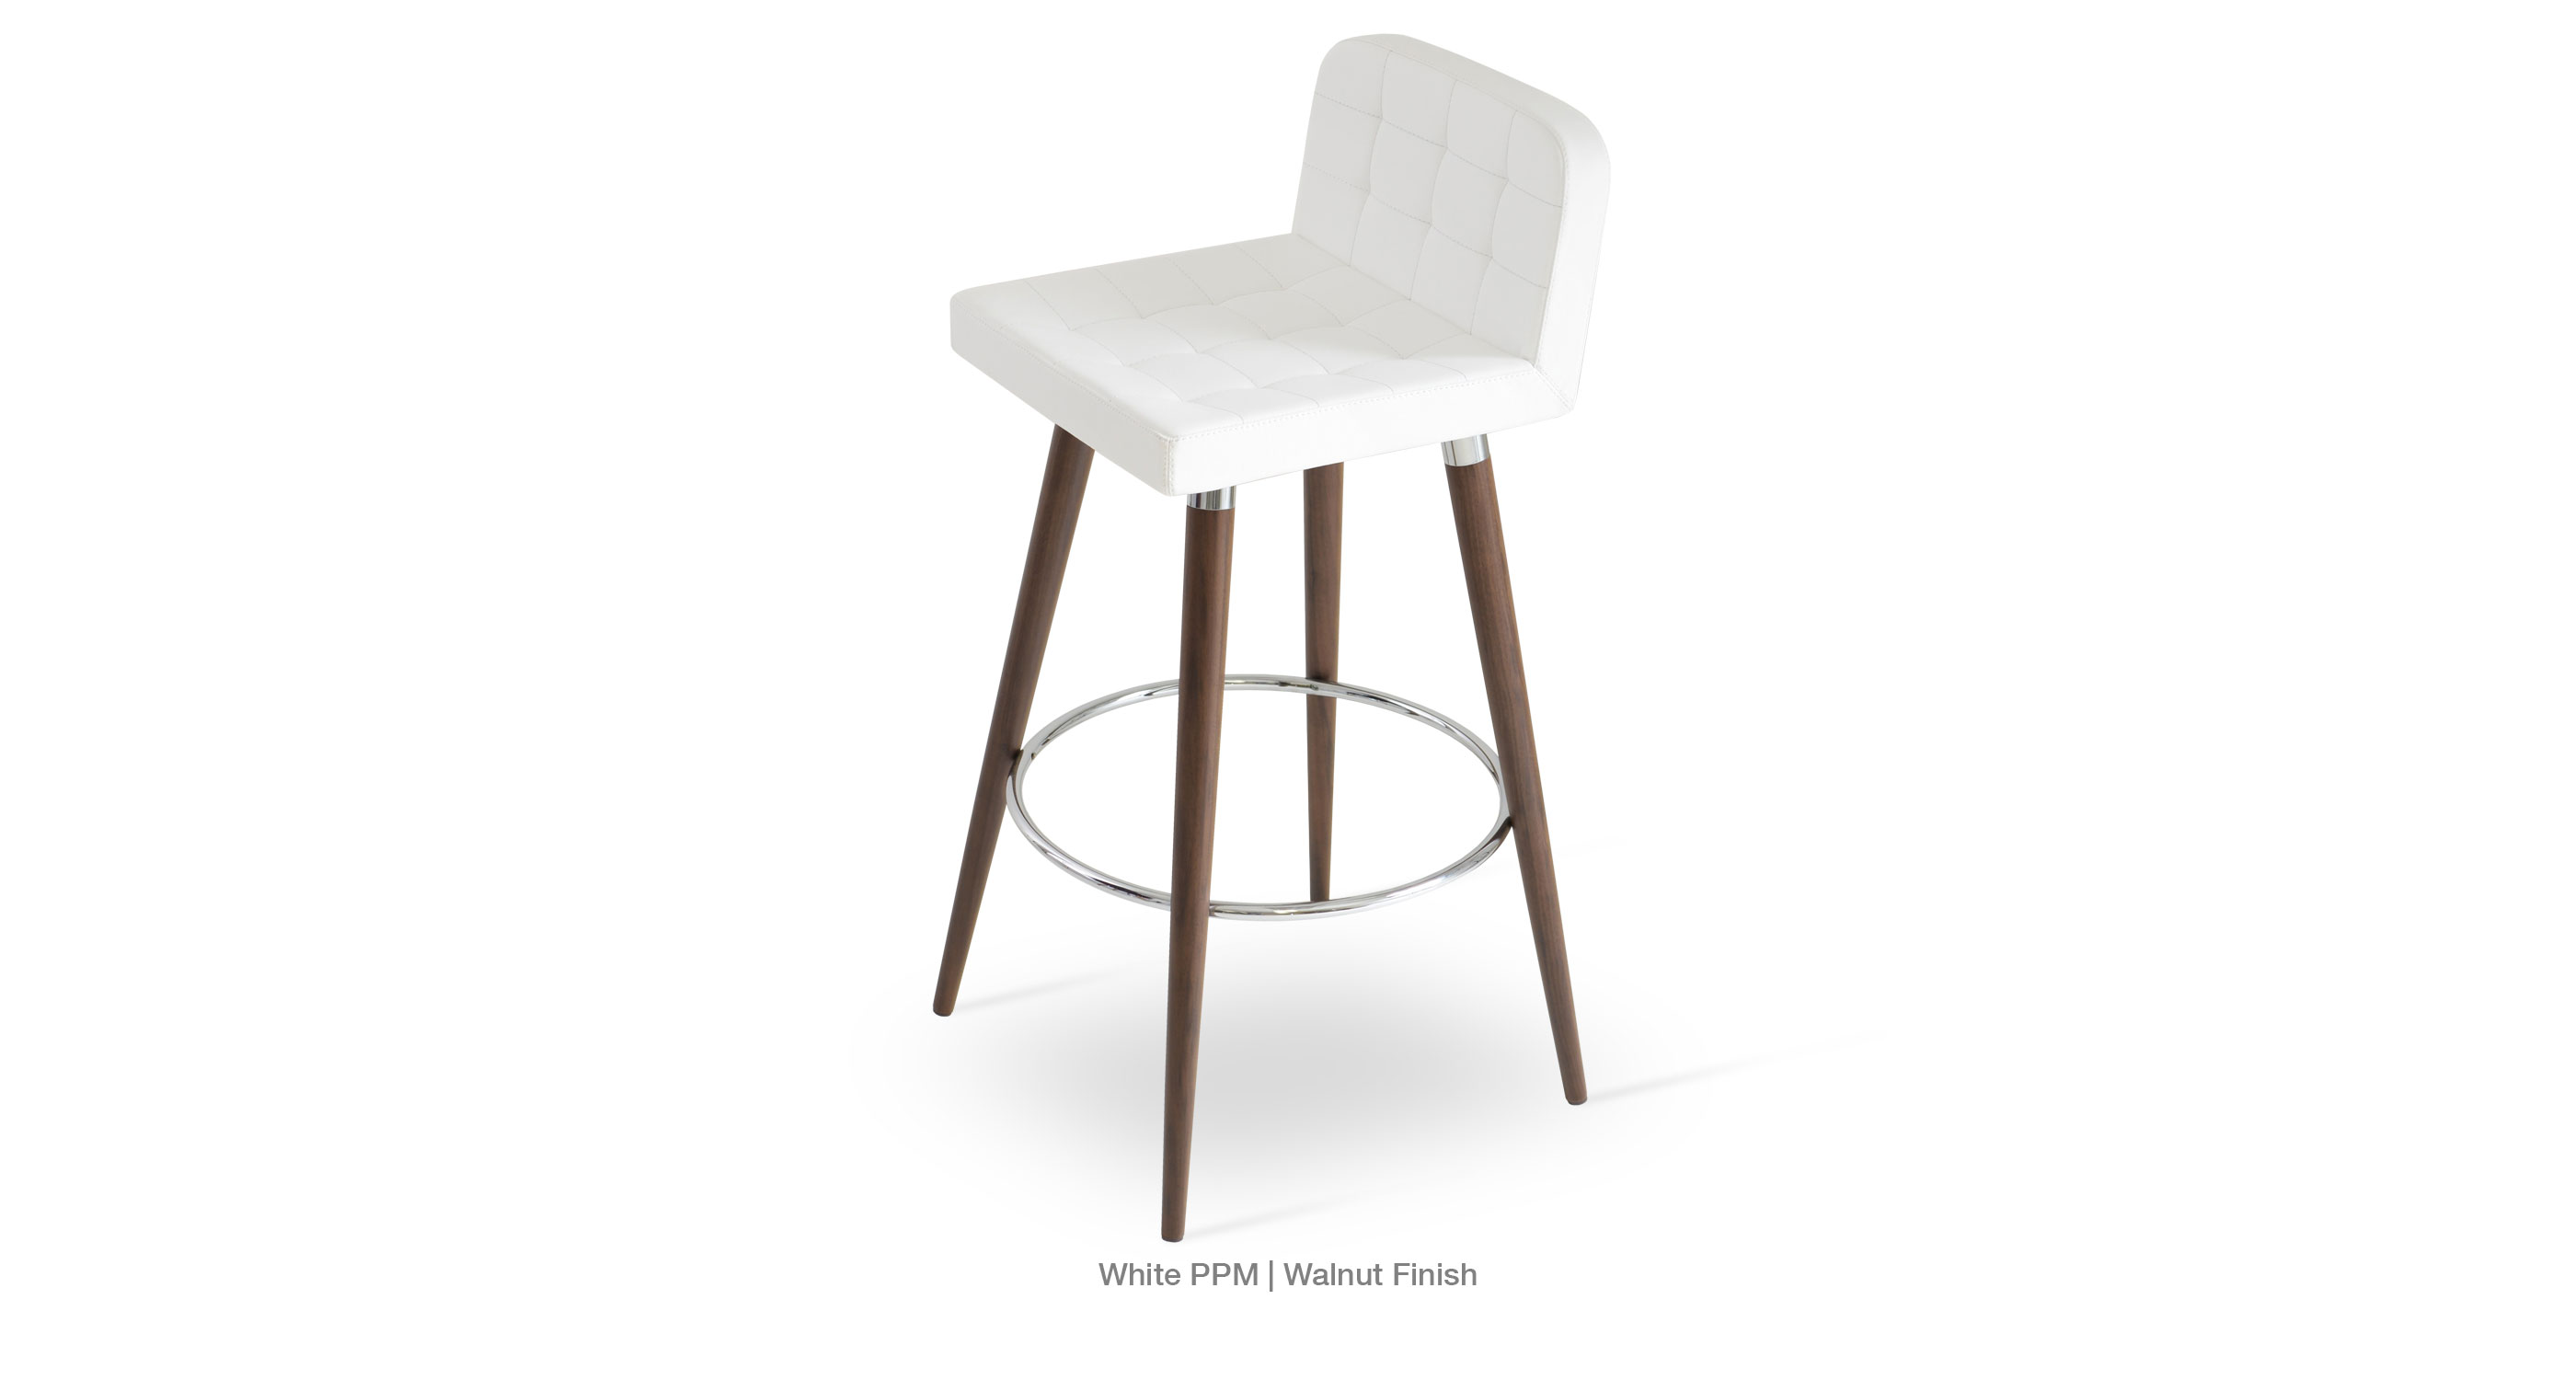 Lara Wood Stool White Ppm